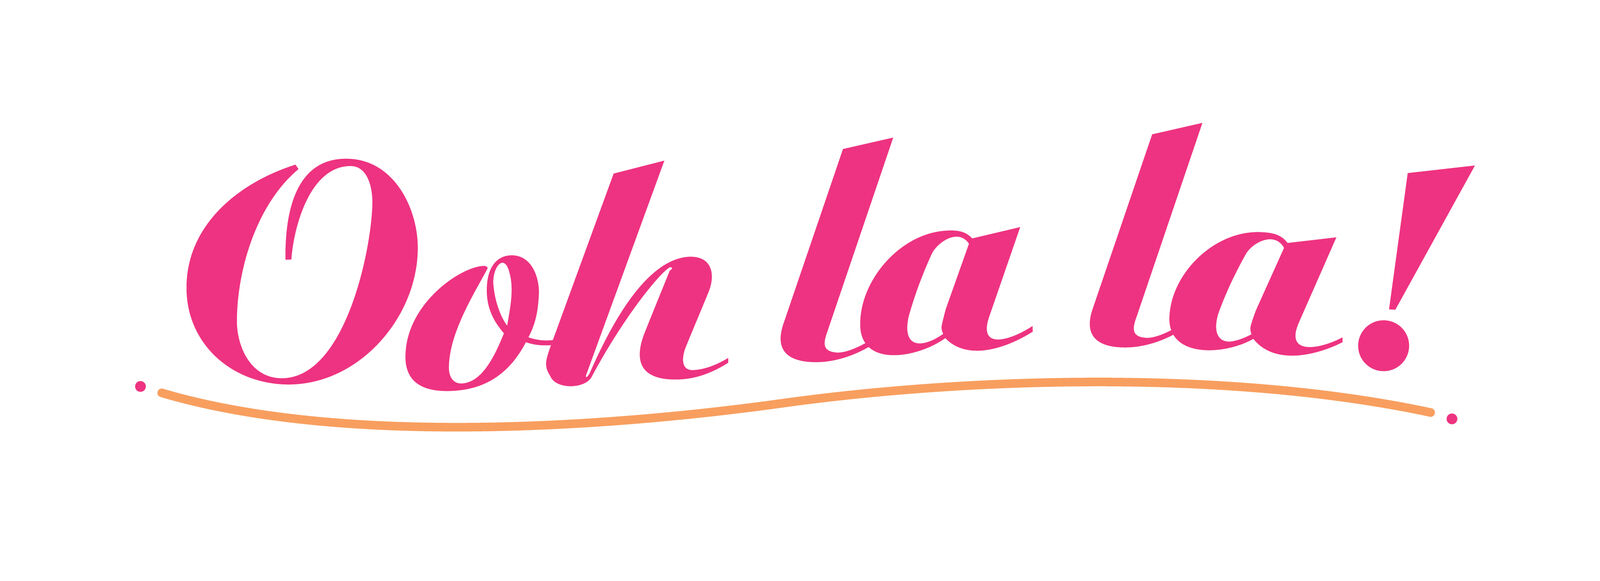 Ooh_La_La Boutique Clothing Jewelry